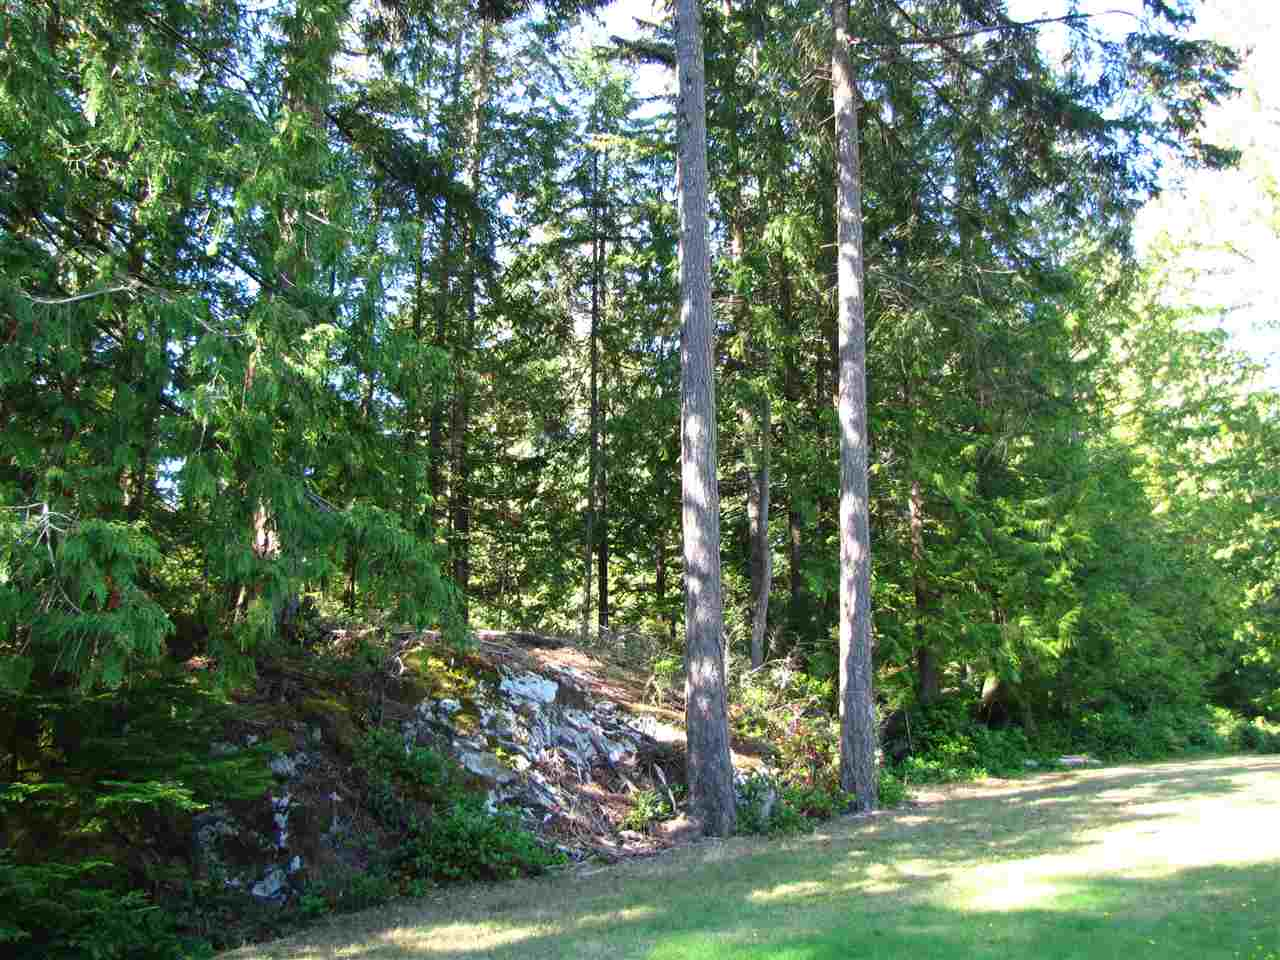 Surrounded by parkland, quiet walking trails, and stunning viewpoints, these Evergreen Lane lots are each unique and budding with potential. Only a handful of lots remain for sale at Evergreen, with Lot 14 offering a unique opportunity for a private, forested home overlooking Aaron's Field. 1.52 ac., GST and building scheme applicable.